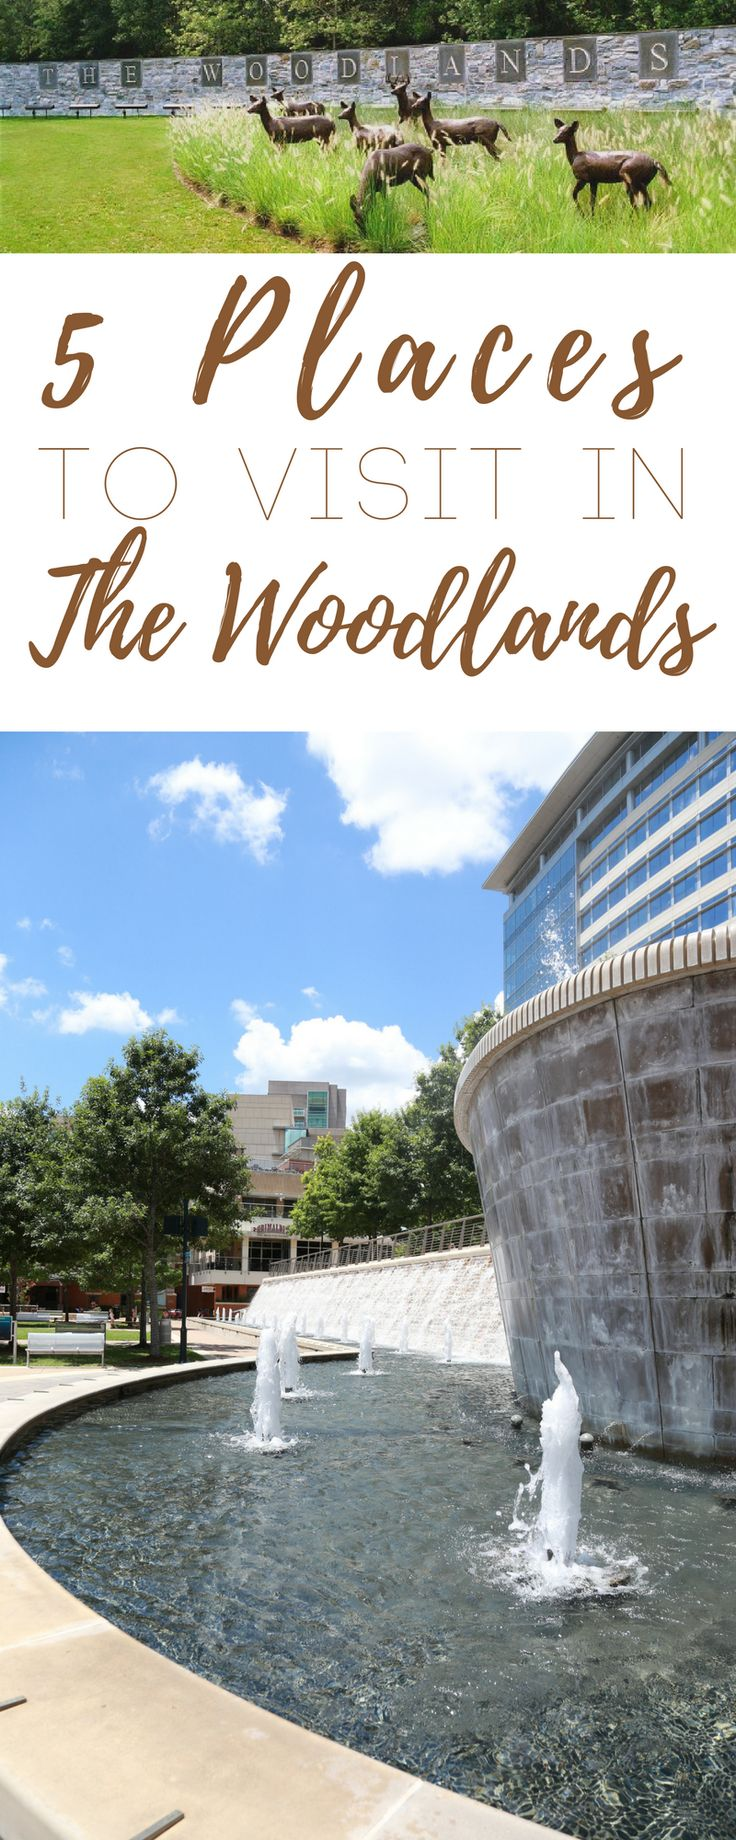 If you plan on visiting the Houston area, here are 5 places to visit in The Woodlands, Texas, a small community on the north side of Houston. #FromHeretoHere